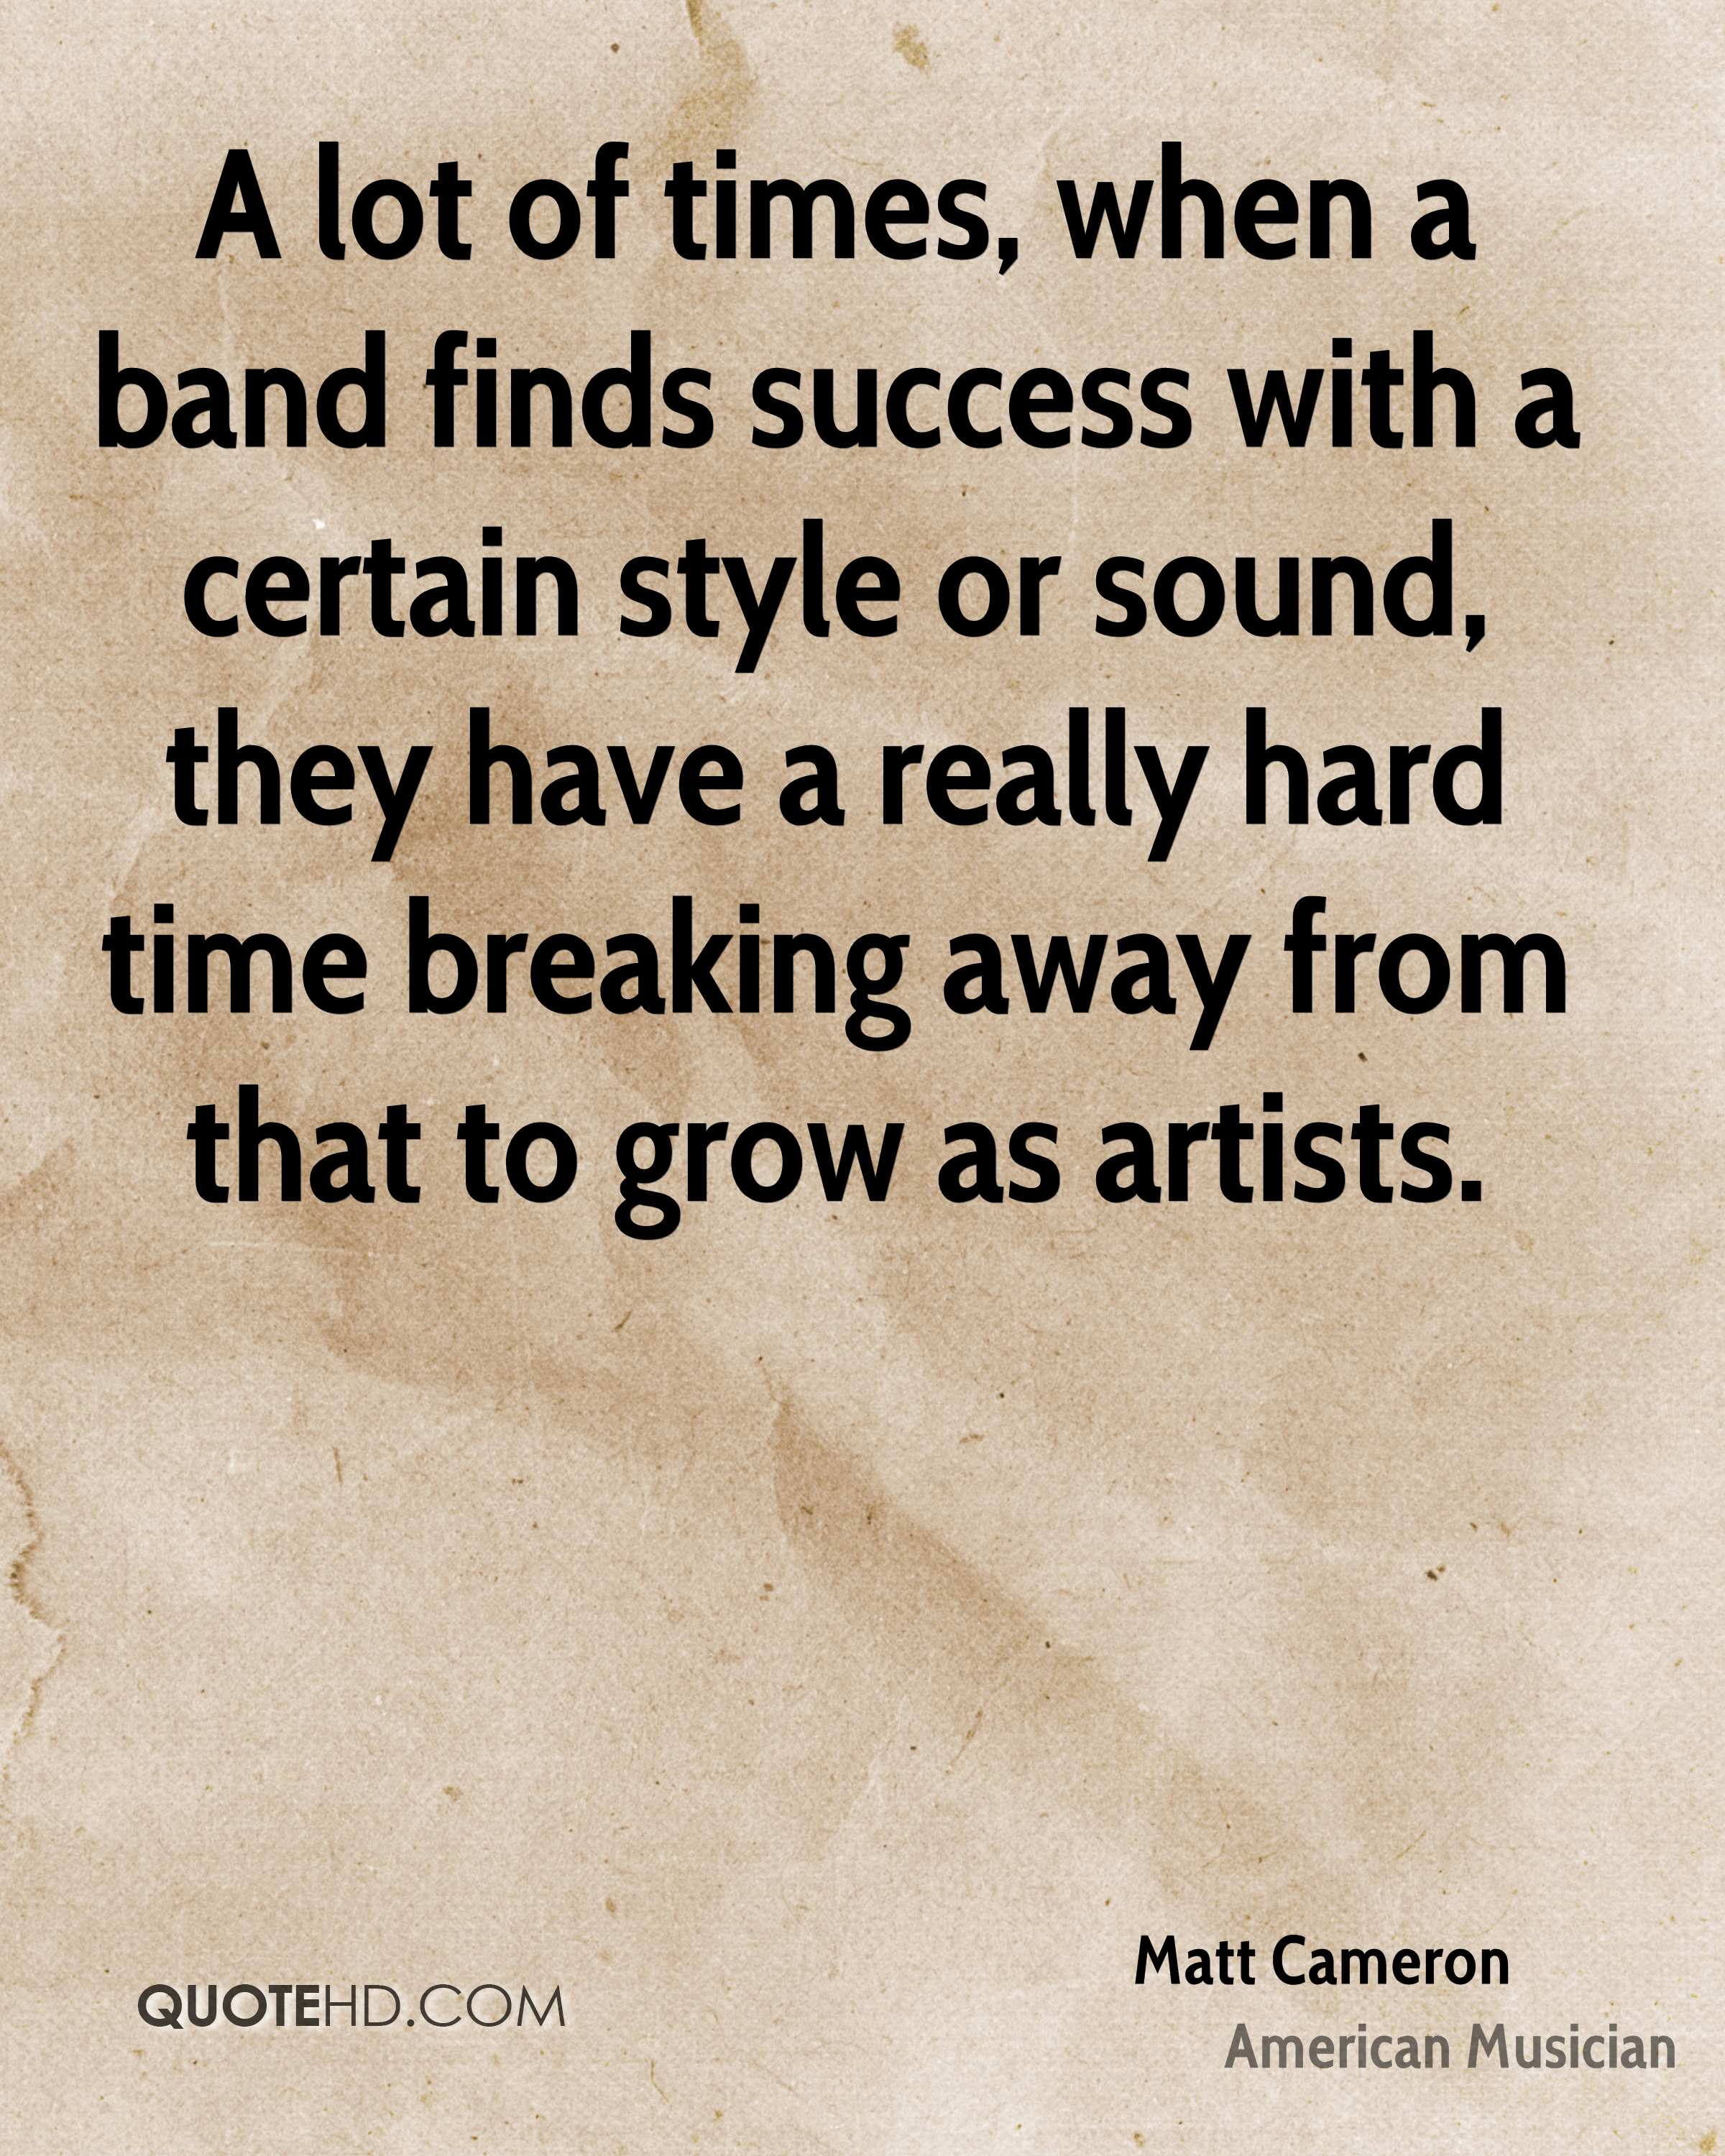 A lot of times, when a band finds success with a certain style or sound, they have a really hard time breaking away from that to grow as artists.